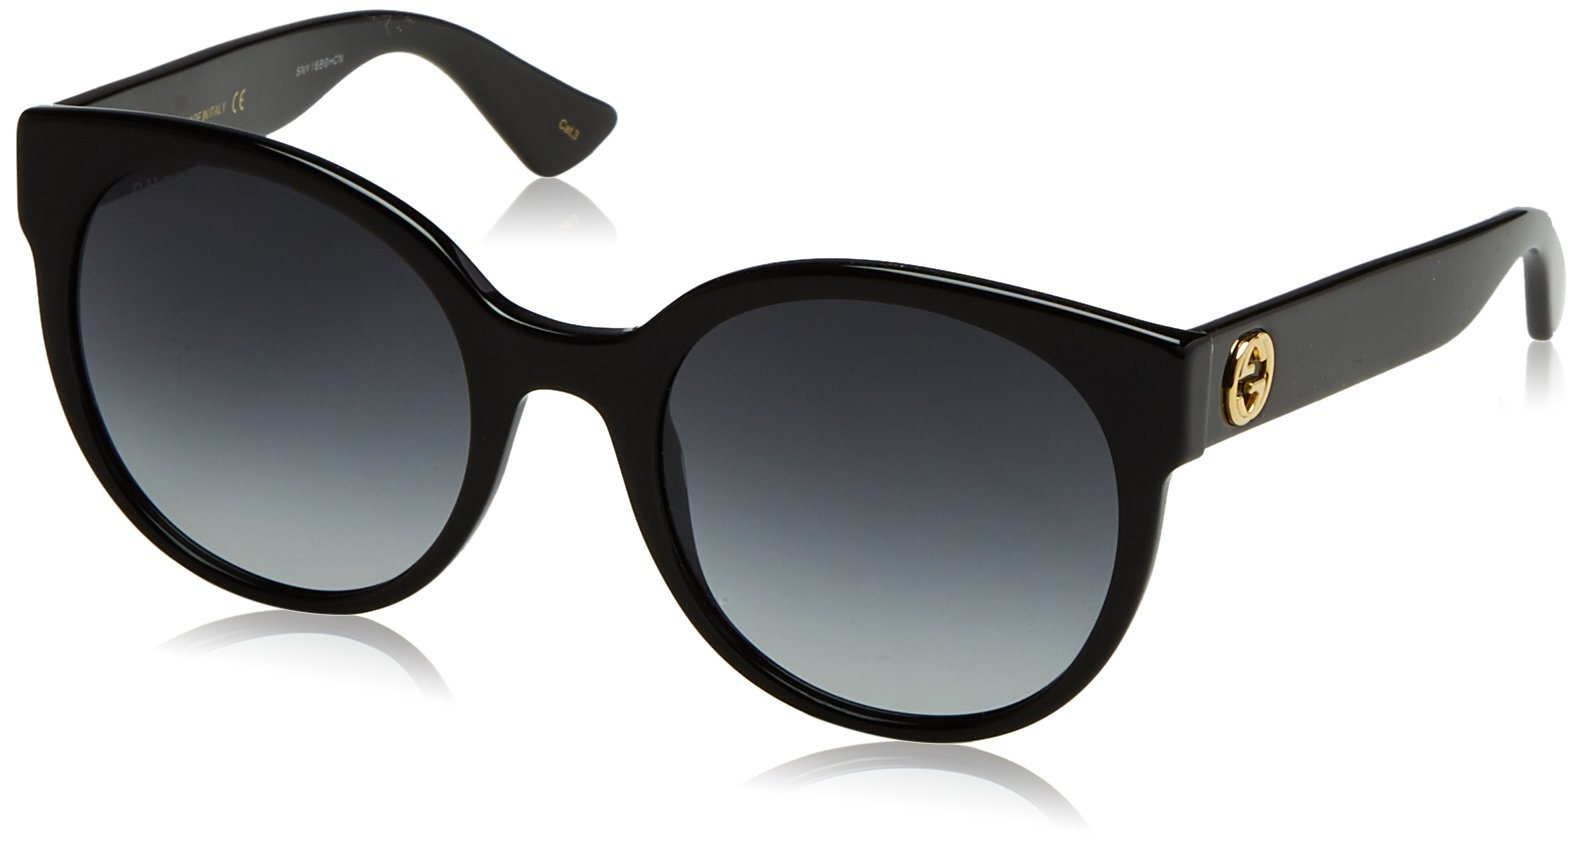 Gucci 0035S 001 Black 0035S Round Sunglasses Lens Category 3 Size 54mm by Gucci